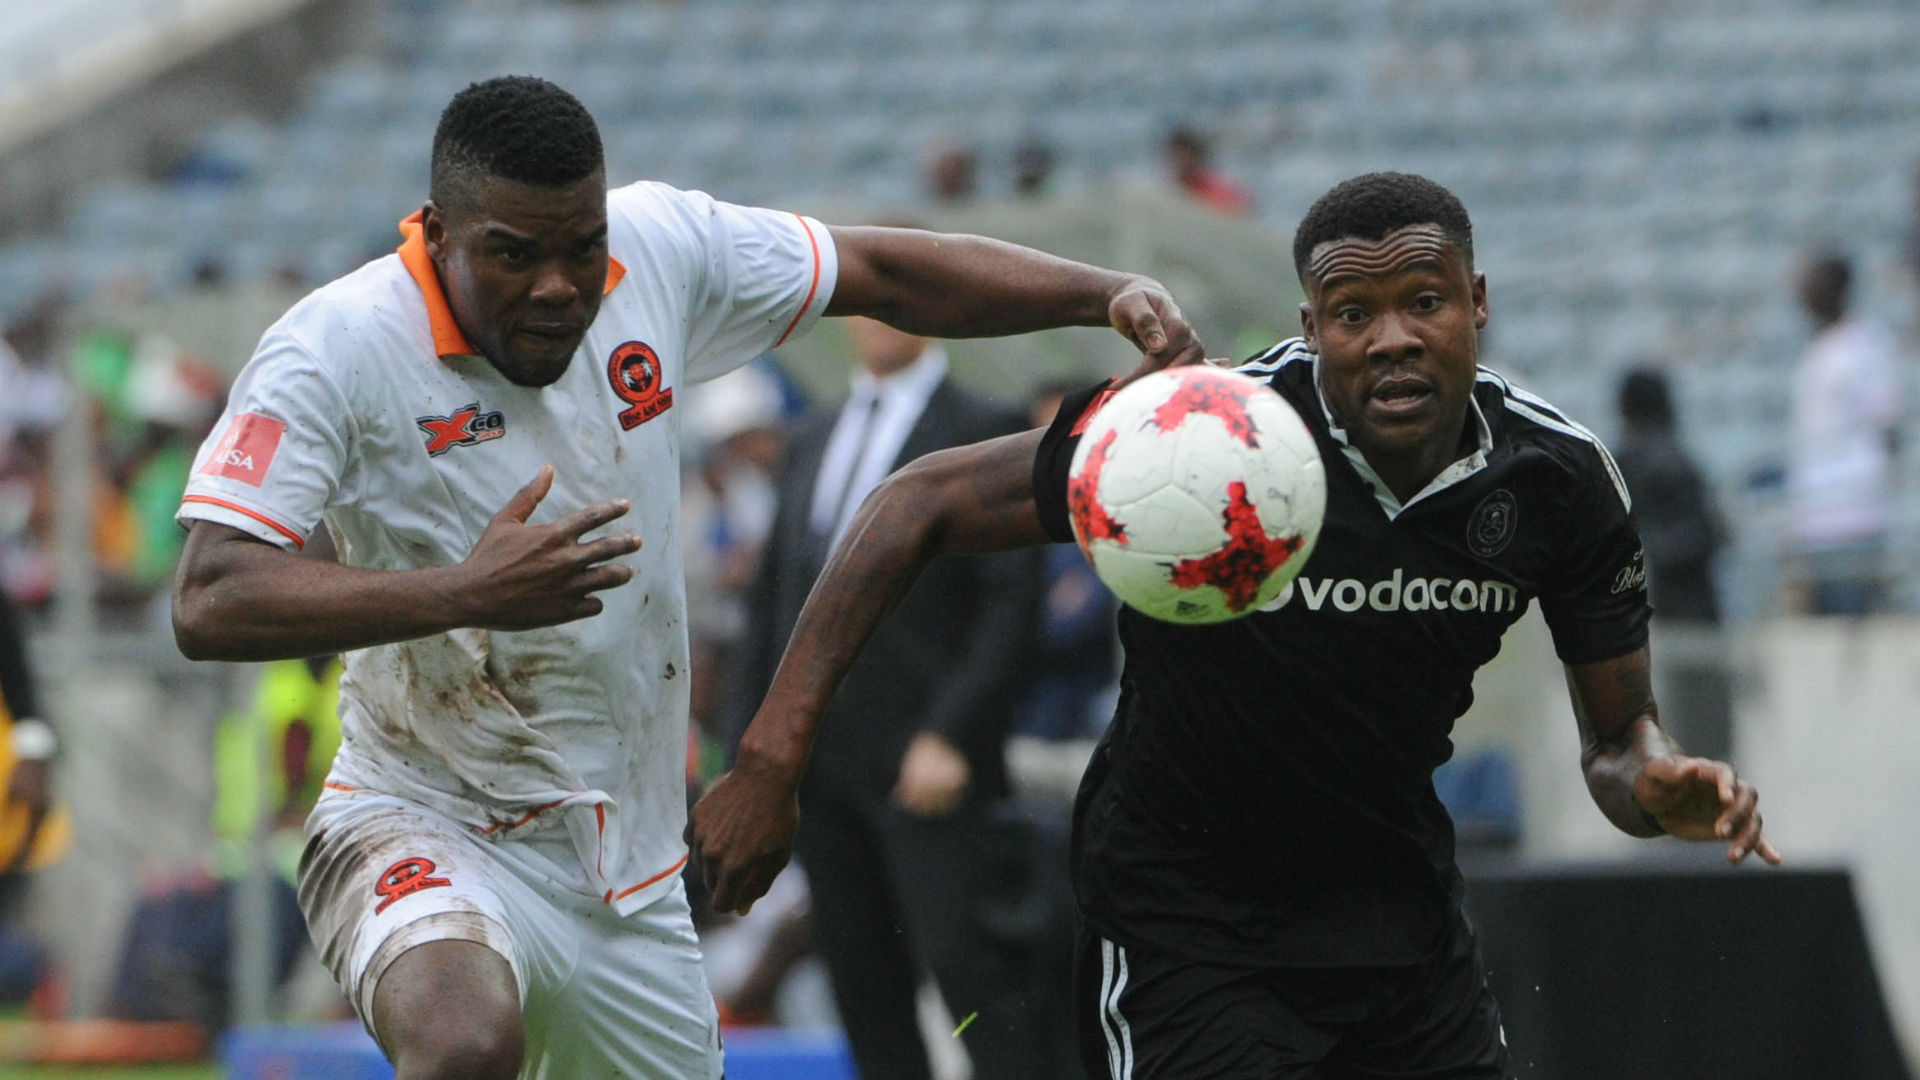 Thamsanqa Gabuza of Orlando Pirates vs Polokwane City